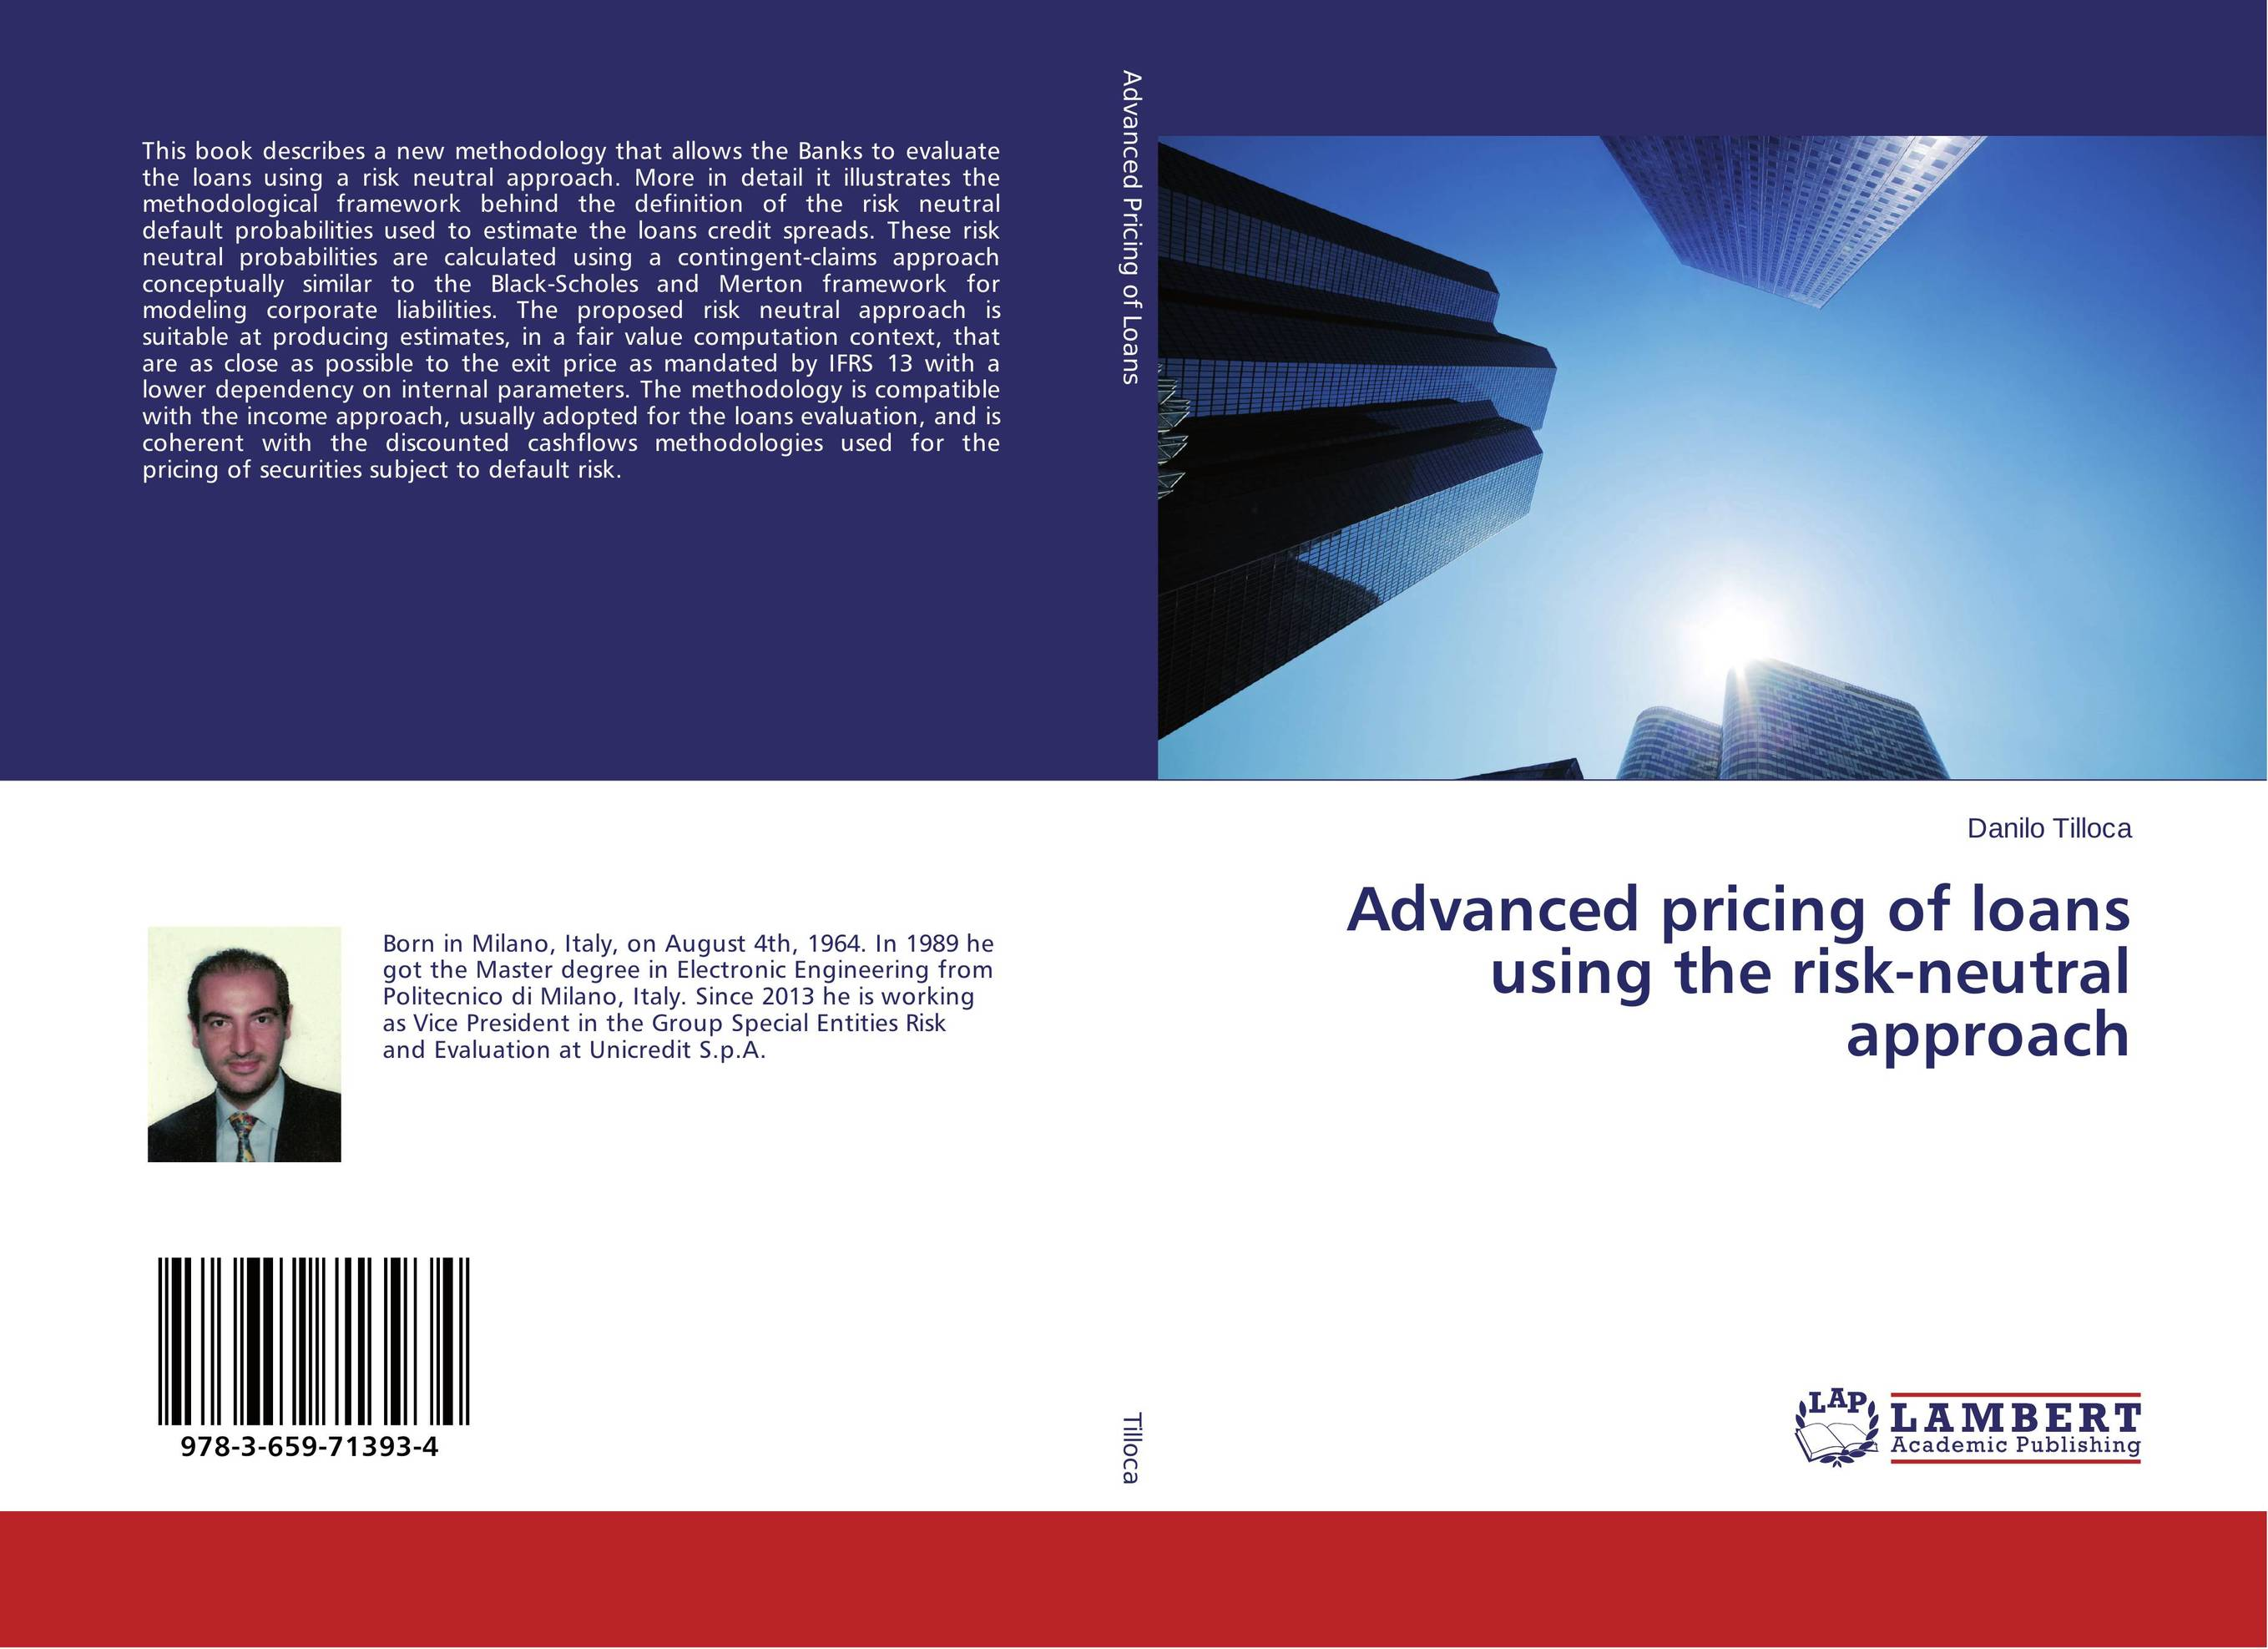 Advanced pricing of loans using the risk-neutral approach fair neutral